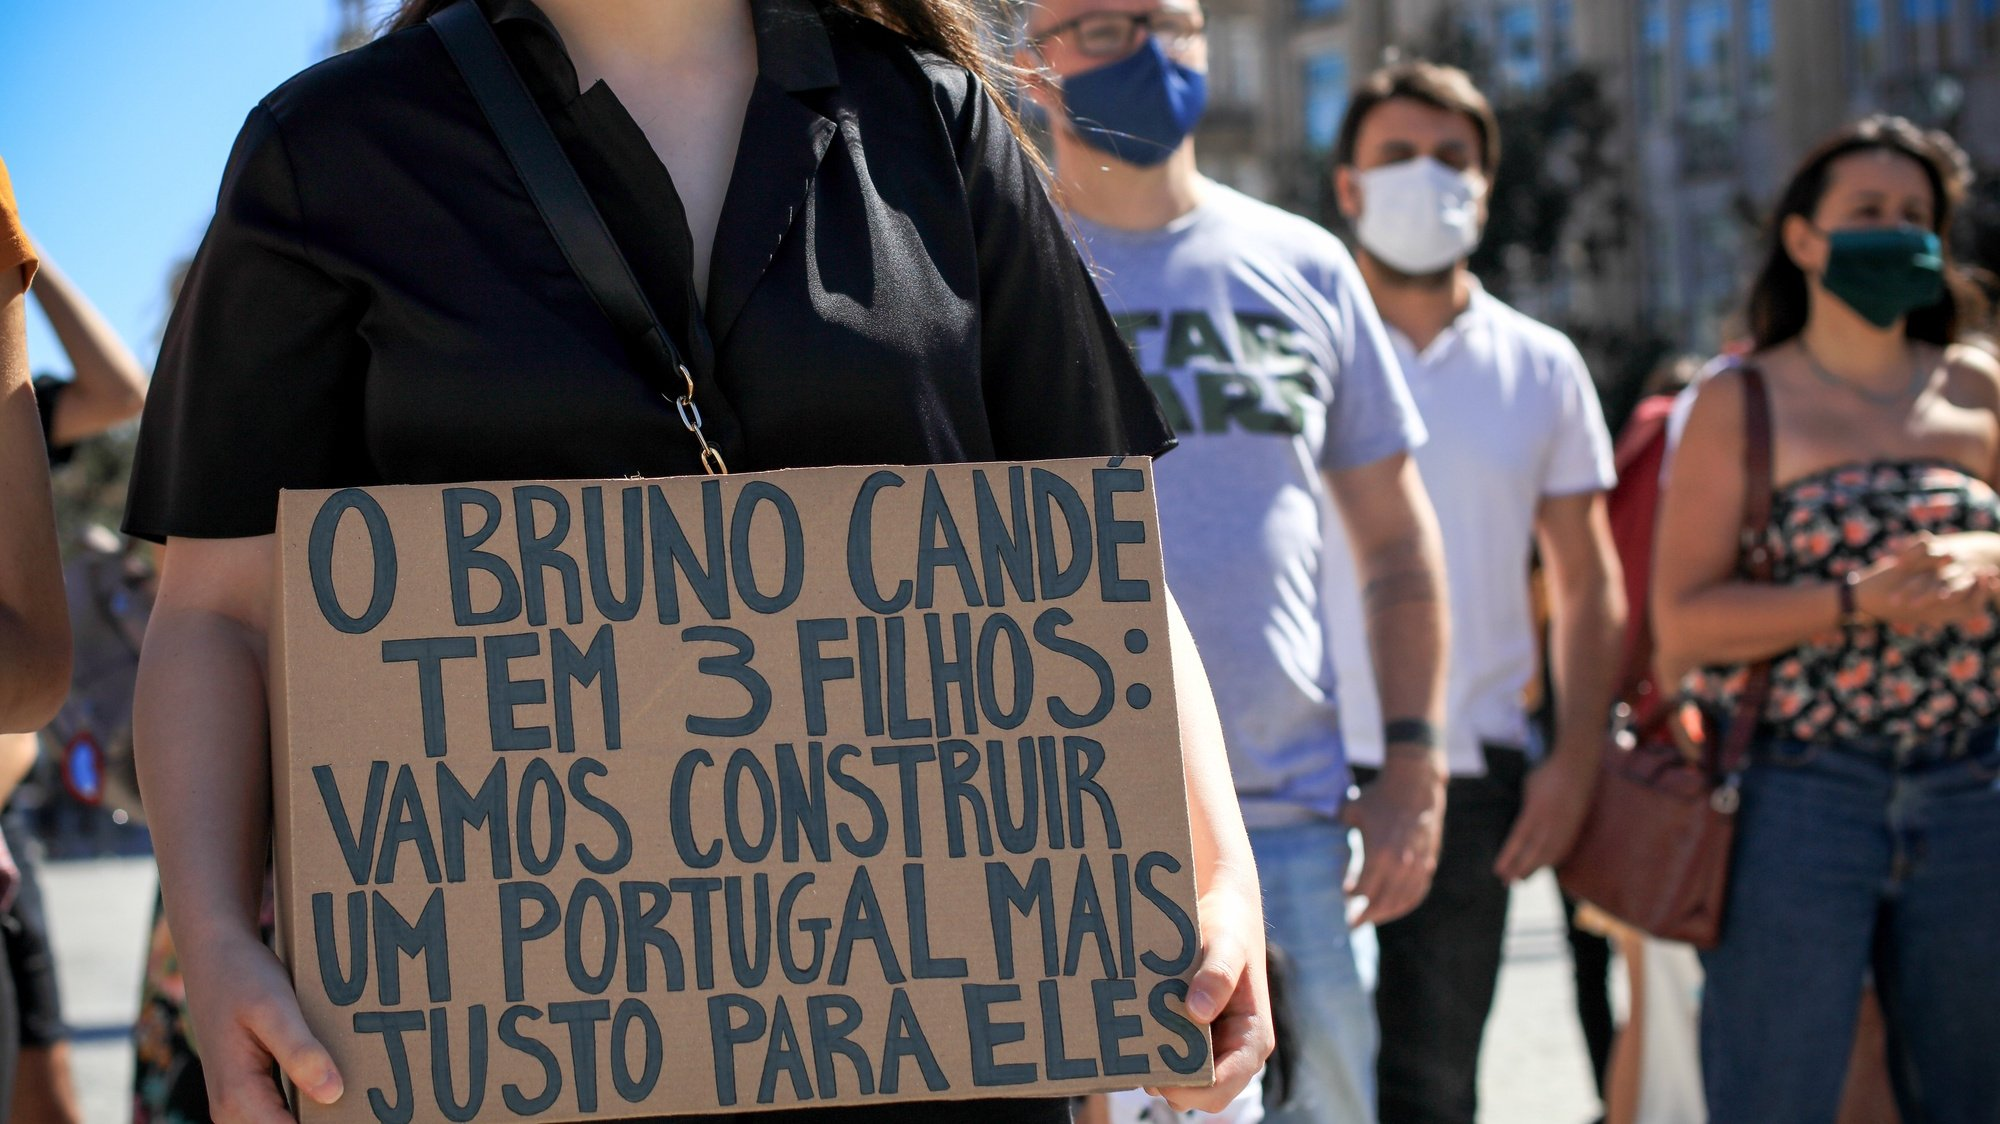 epa08579320 A demonstrator holds a banner with the words 'Bruno Cande has 3 children: let's build a fair Portugal for them' during a demonstration against the death of actor Bruno Cande and the victims of racism, Porto, Portugal, 01 August 2020. 39 years old actor Bruno Cande was shot dead last 25th July in Lisbon.  EPA/MANUEL FERNANDO ARAUJO